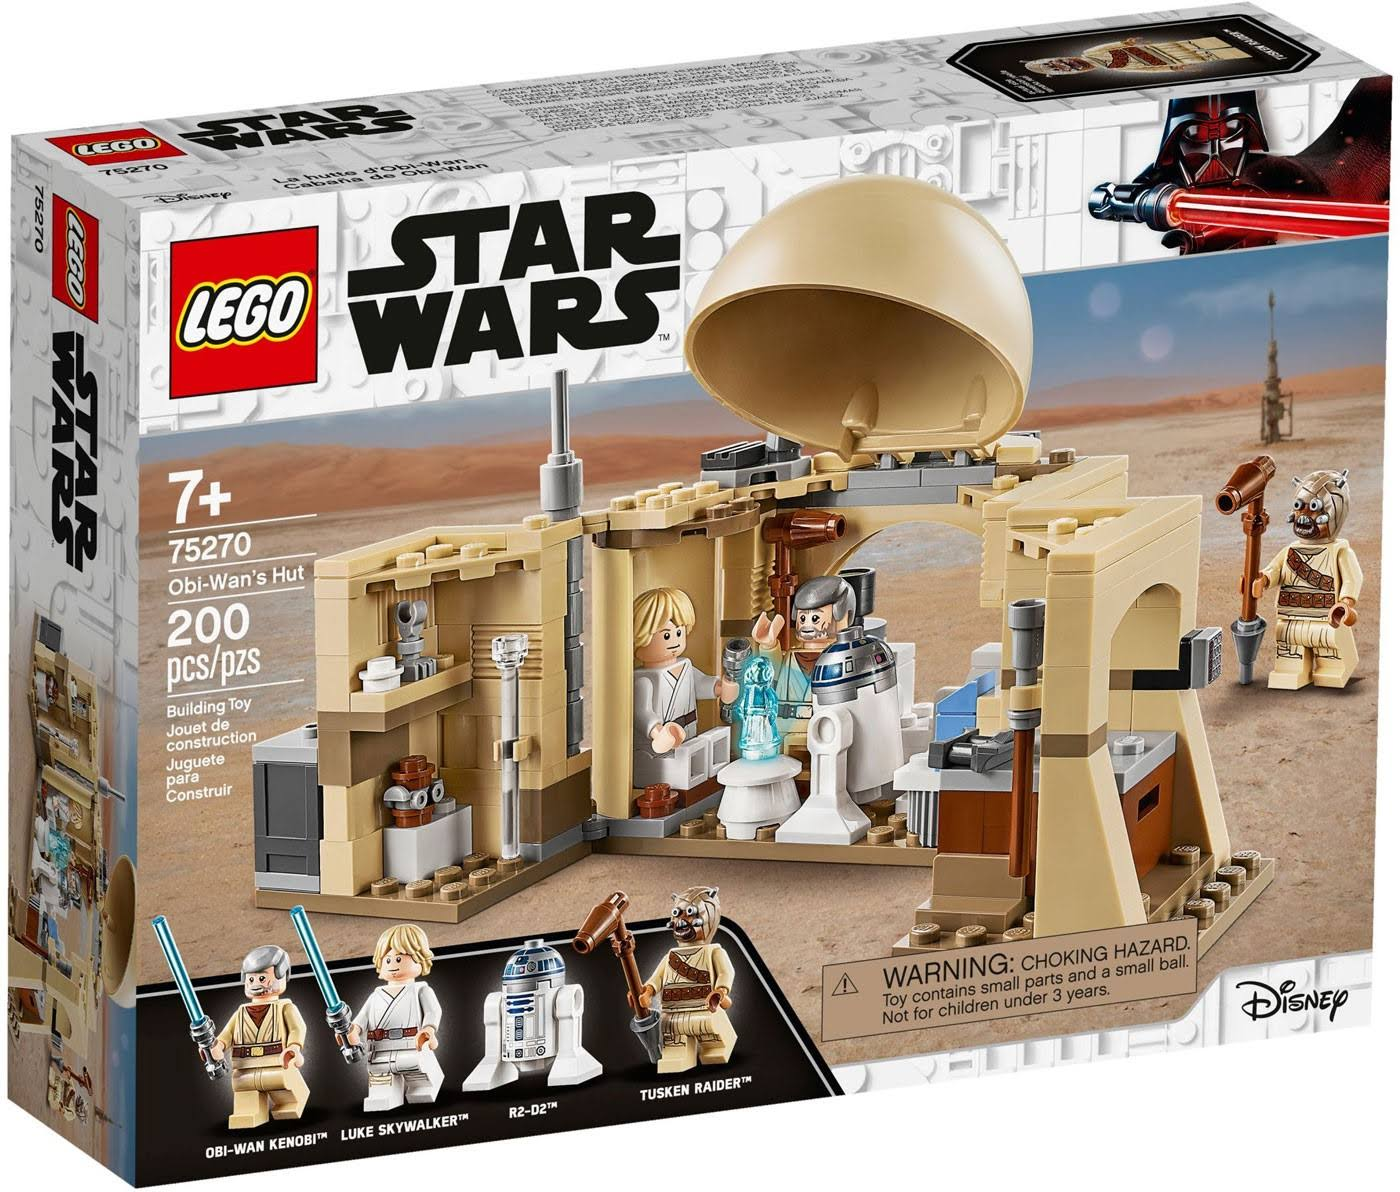 Lego Star Wars - Obi-Wan's Hut 75270